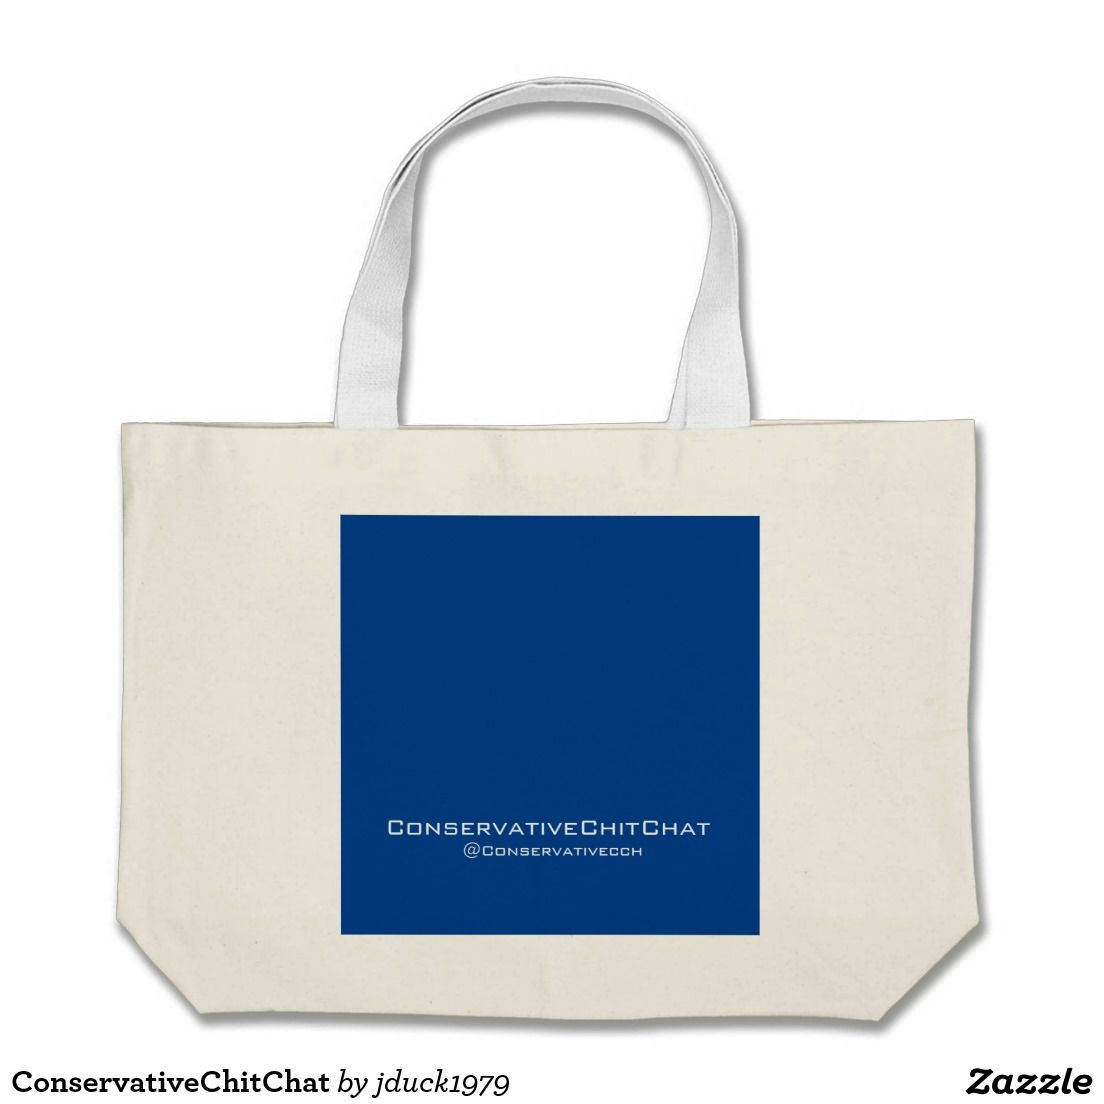 ConservativeChitChat Large Tote Bag